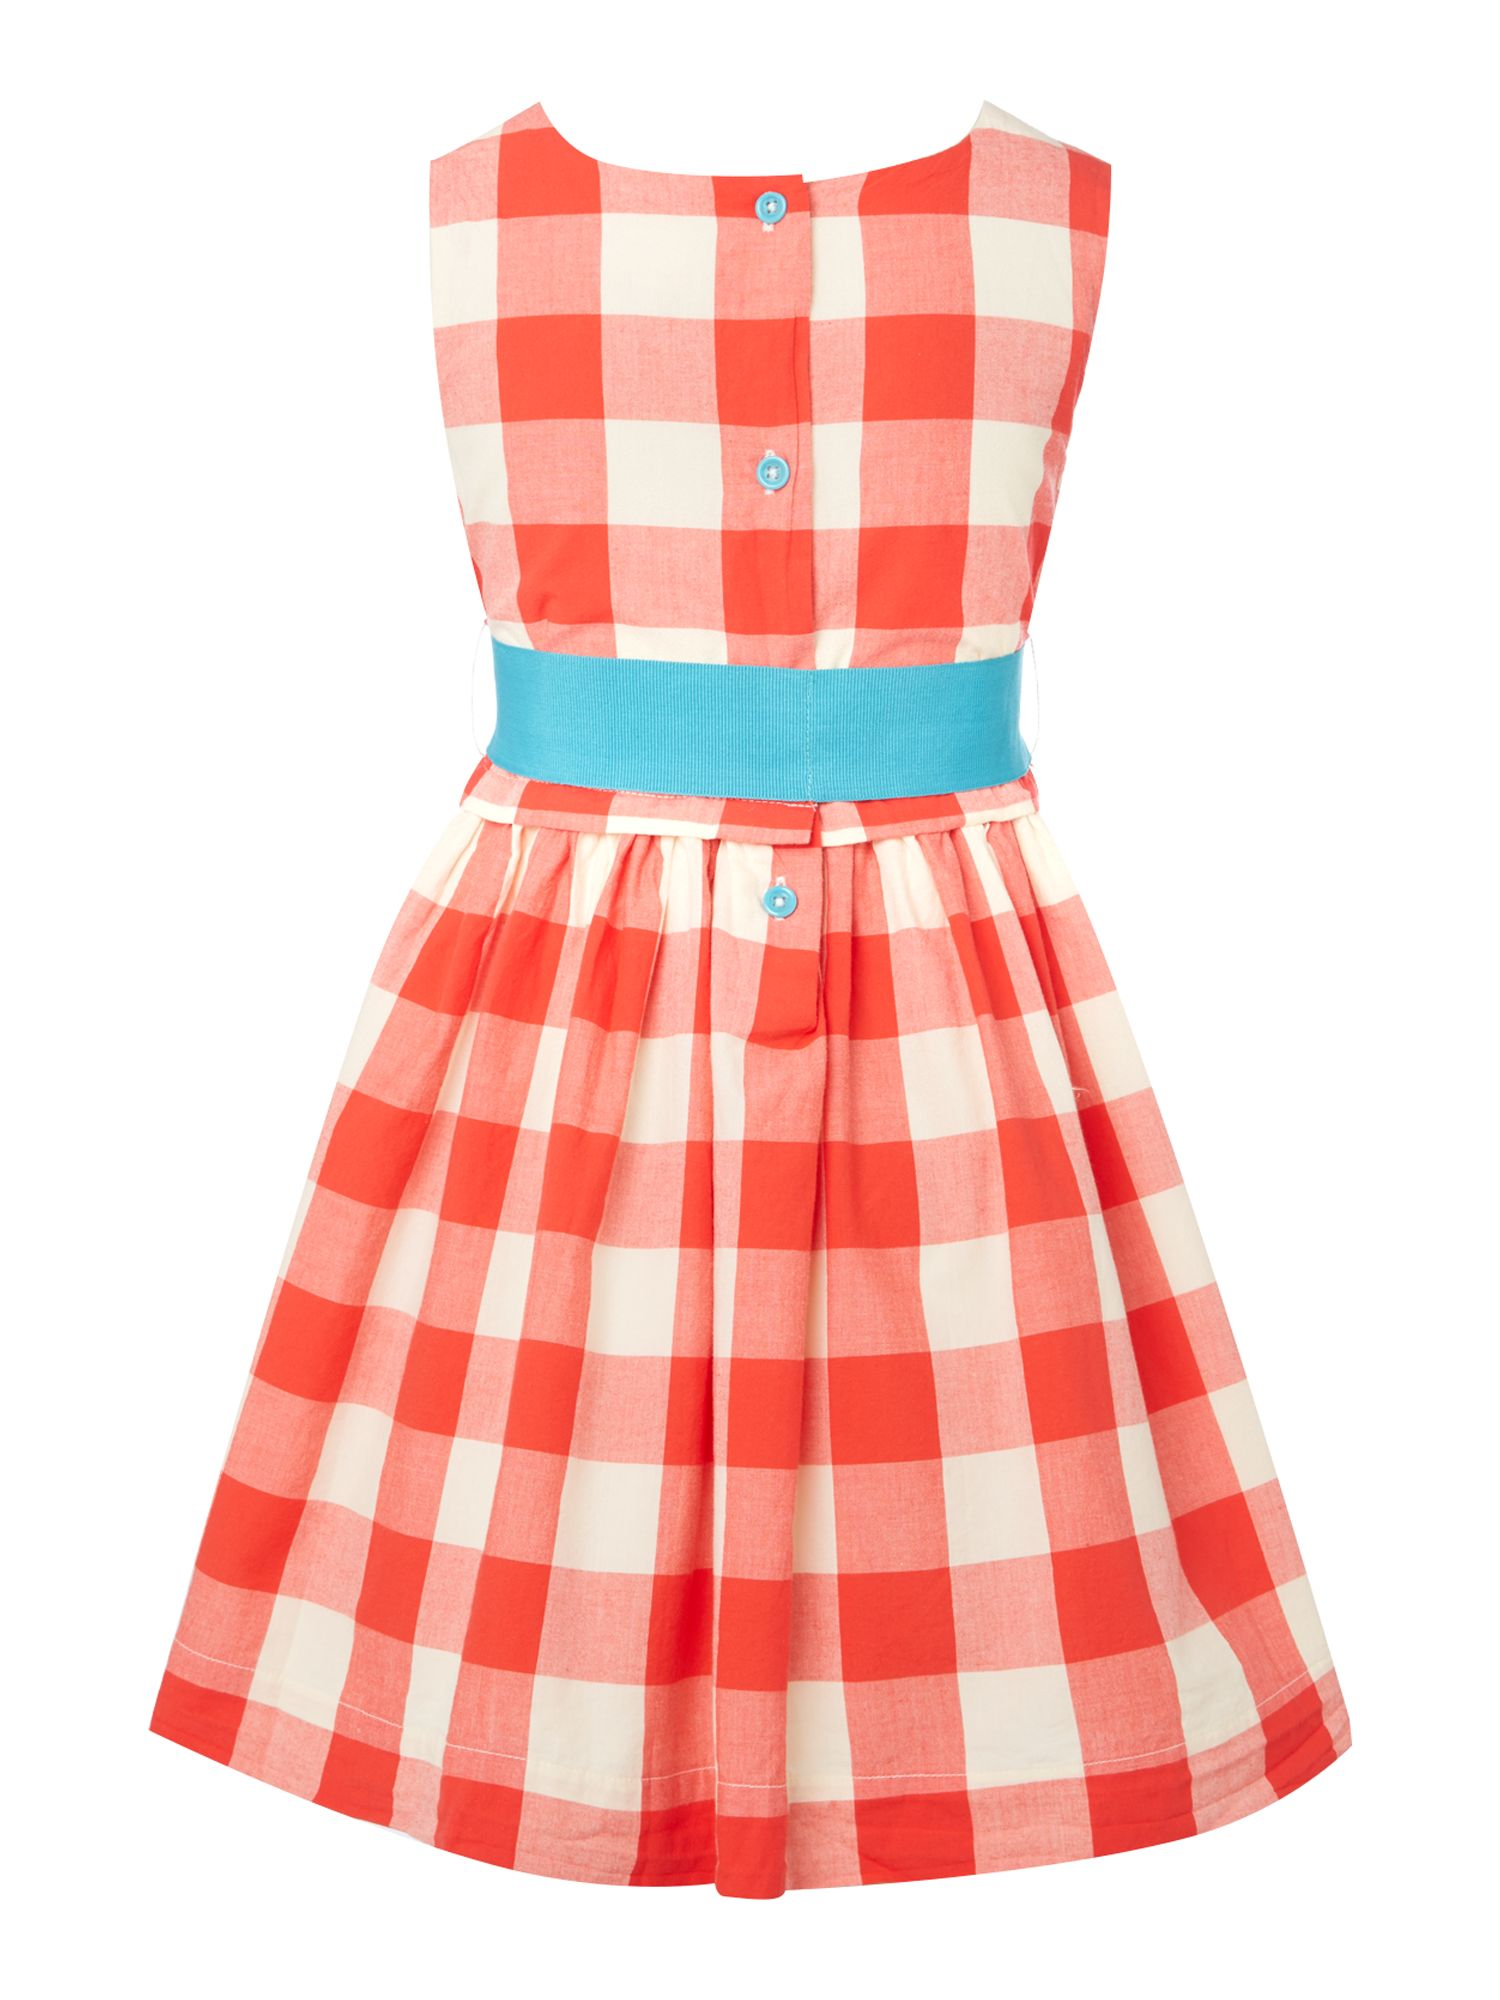 Girls gingham dress with bow